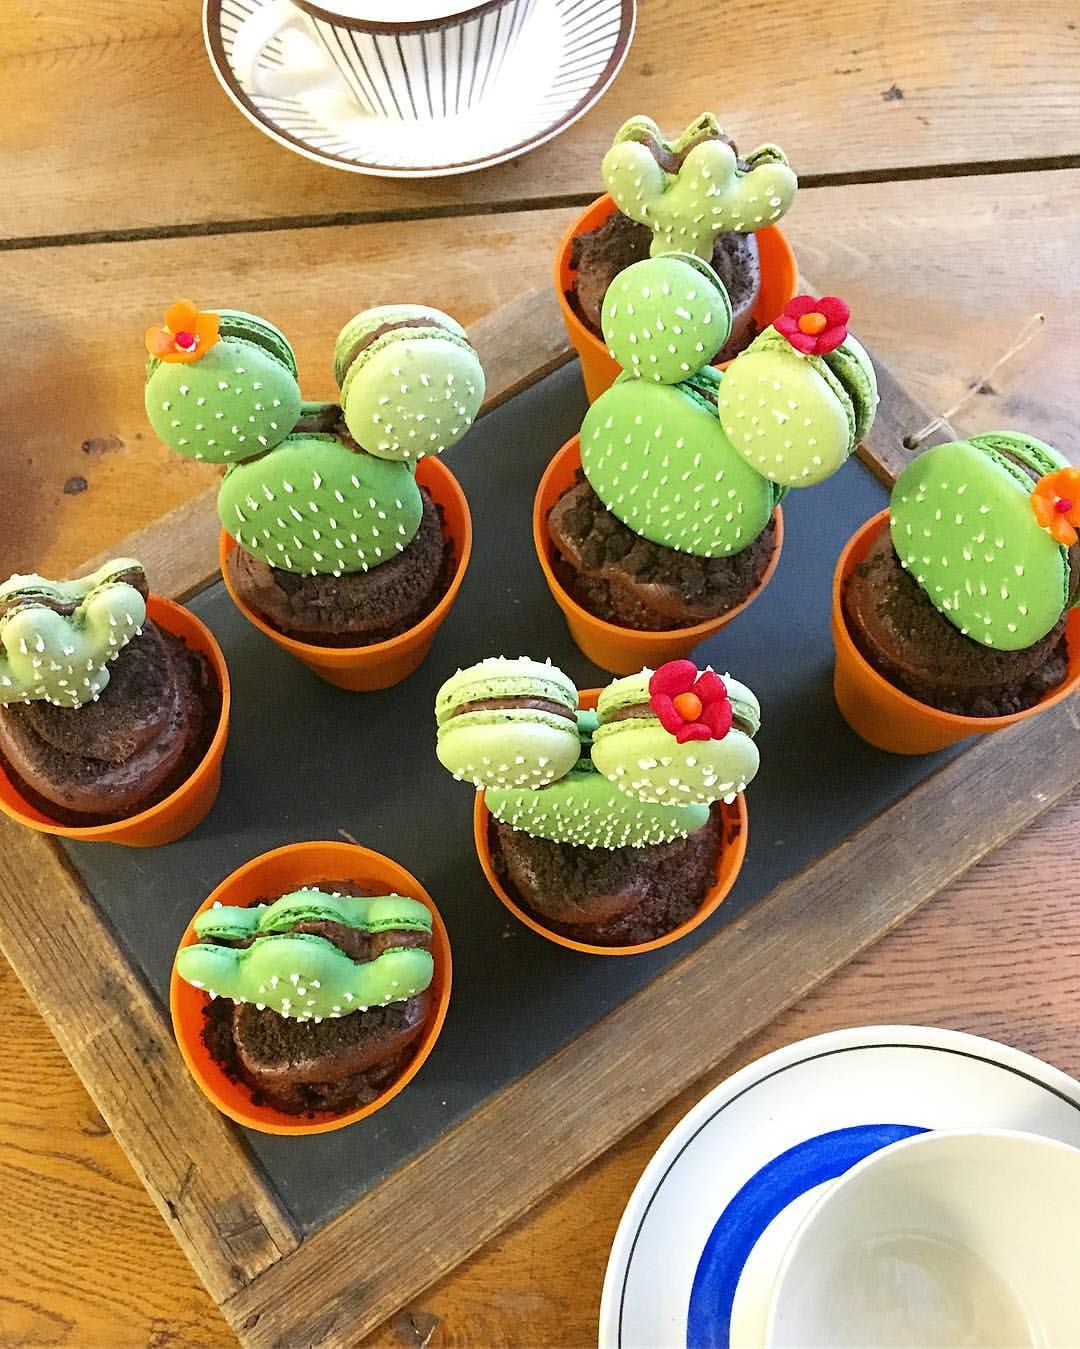 Cactus cupcakes macarons Picture by @sanna_hederstedt